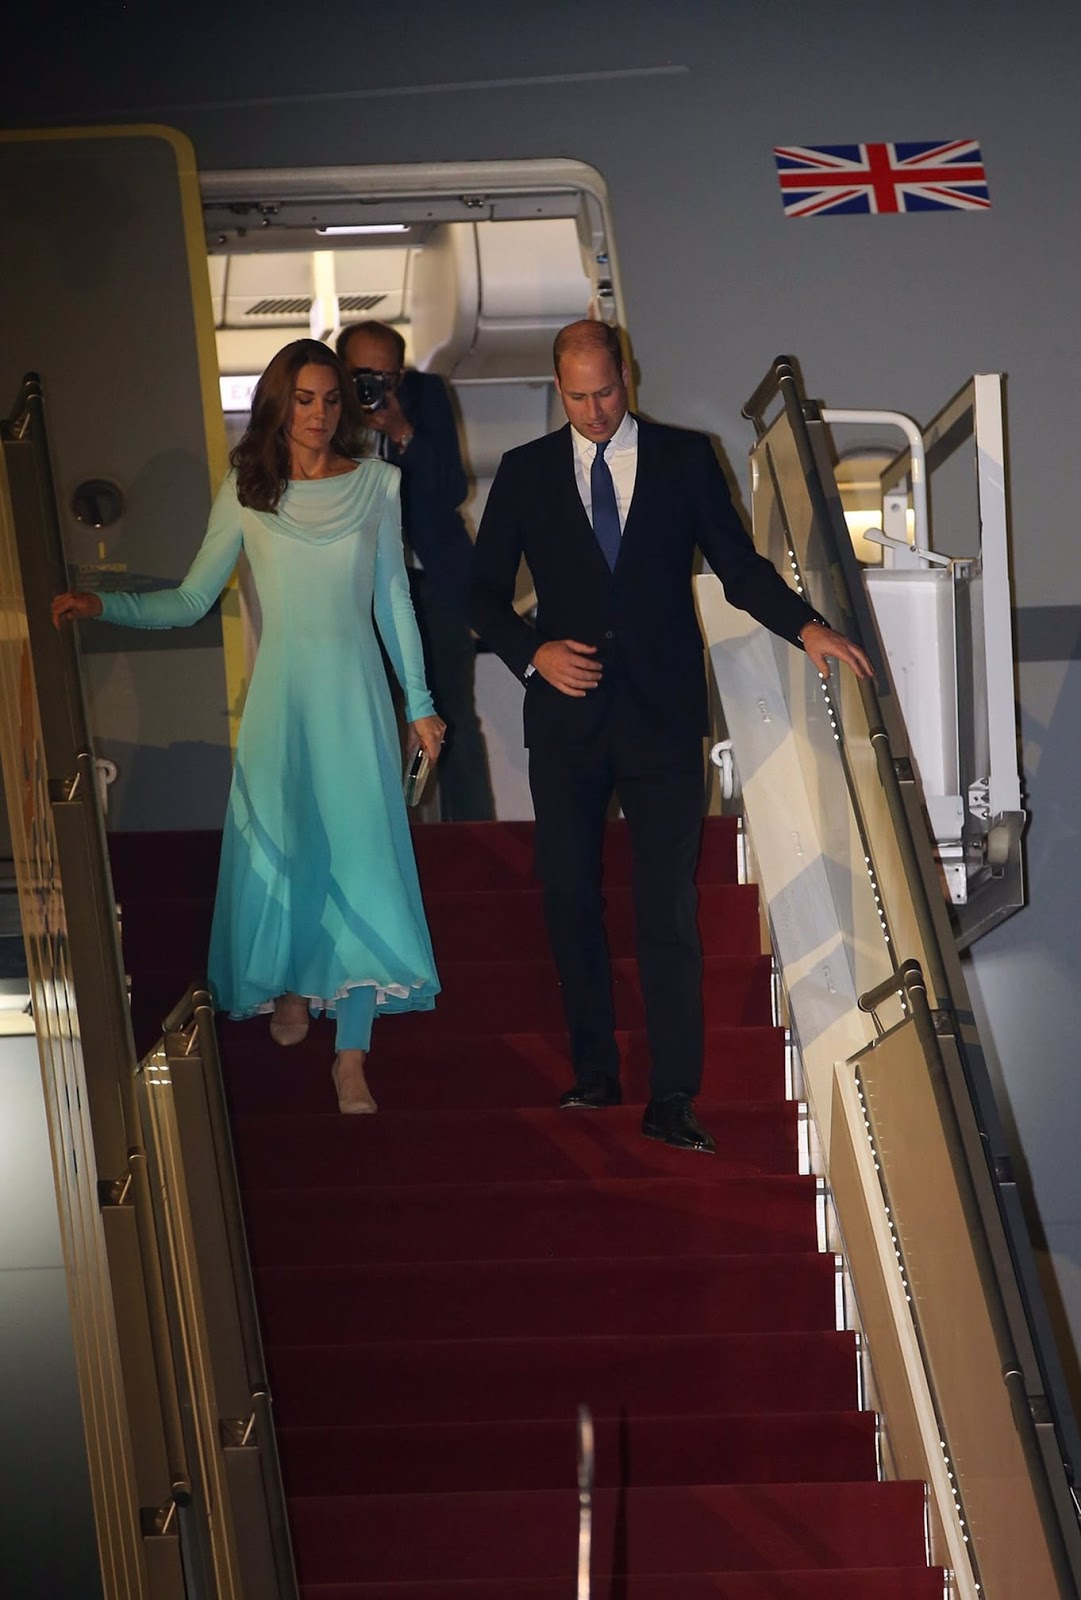 Kate Middleton Arrives in Pakistan Wearing a Bespoke Pale Blue Catherine Walker Dress and Trousers